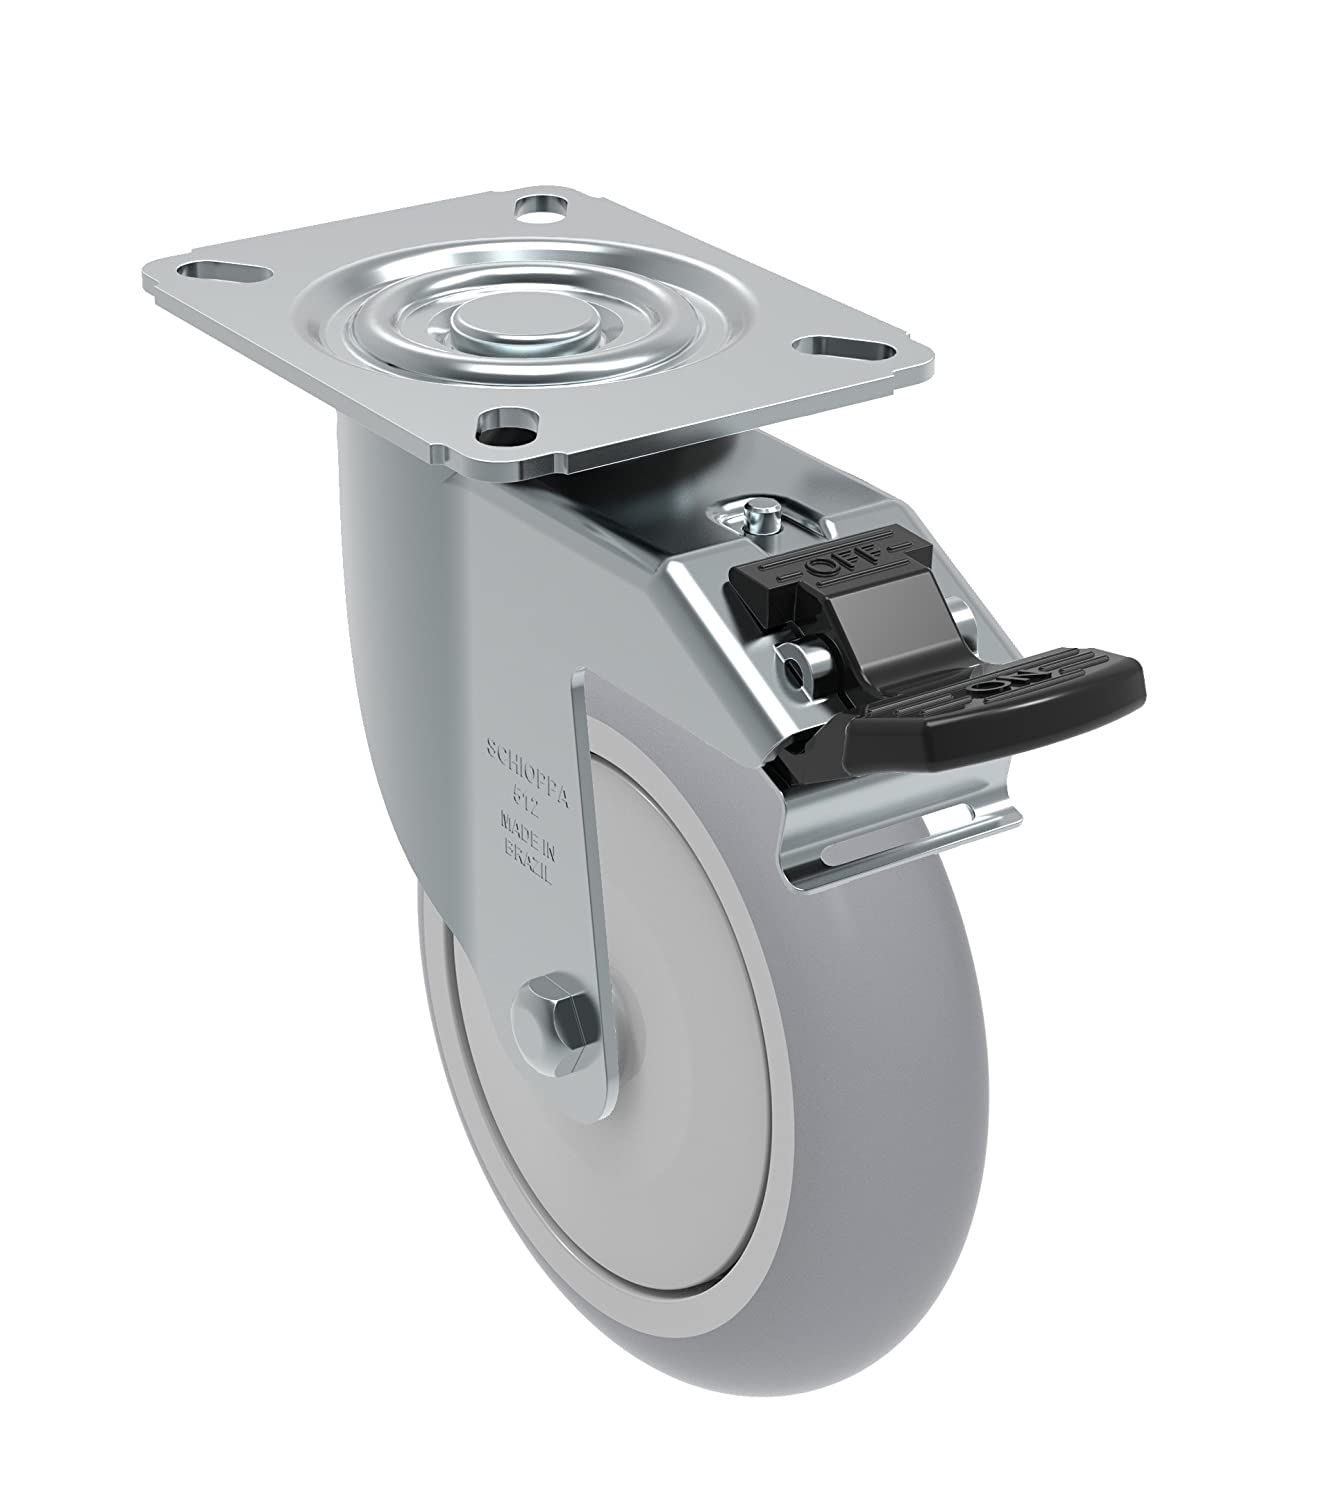 Schioppa L12 Series GL 312 SPE Non-Marking Extra Soft Thermoplastic Rubber Precision Ball Bearing Wheel Plate 3-1//8 x 4-1//8 Bolt Holes 3-1//8 x 2-1//4 3 x 1-1//4 Swivel Caster 3 x 1-1//4 Swivel Caster 125 lbs